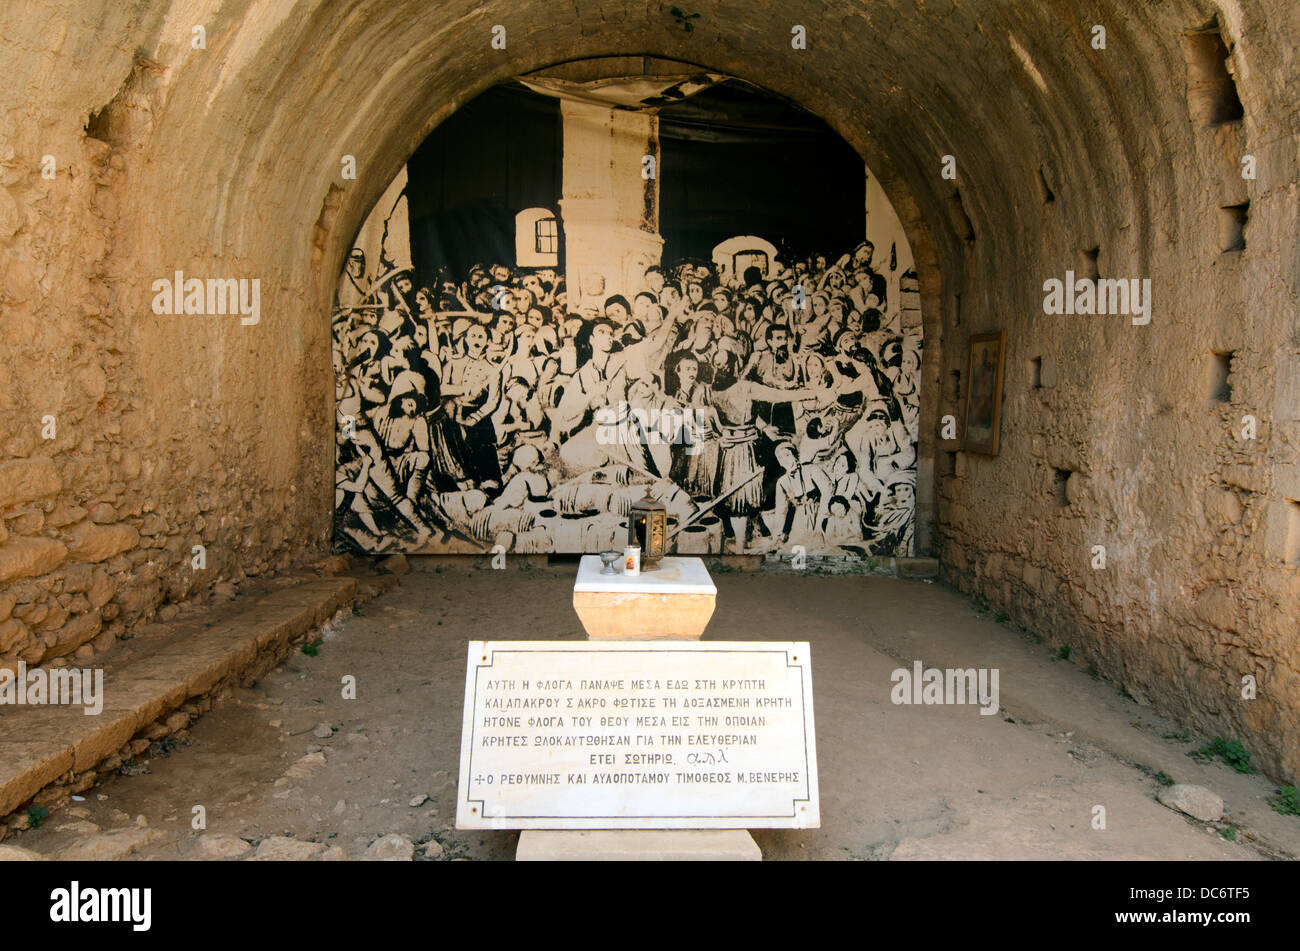 Powder magazine with a Commemorative Inscription placed In 1930 by the  the archbishop Timotheos Veneris in remembrance - Stock Image